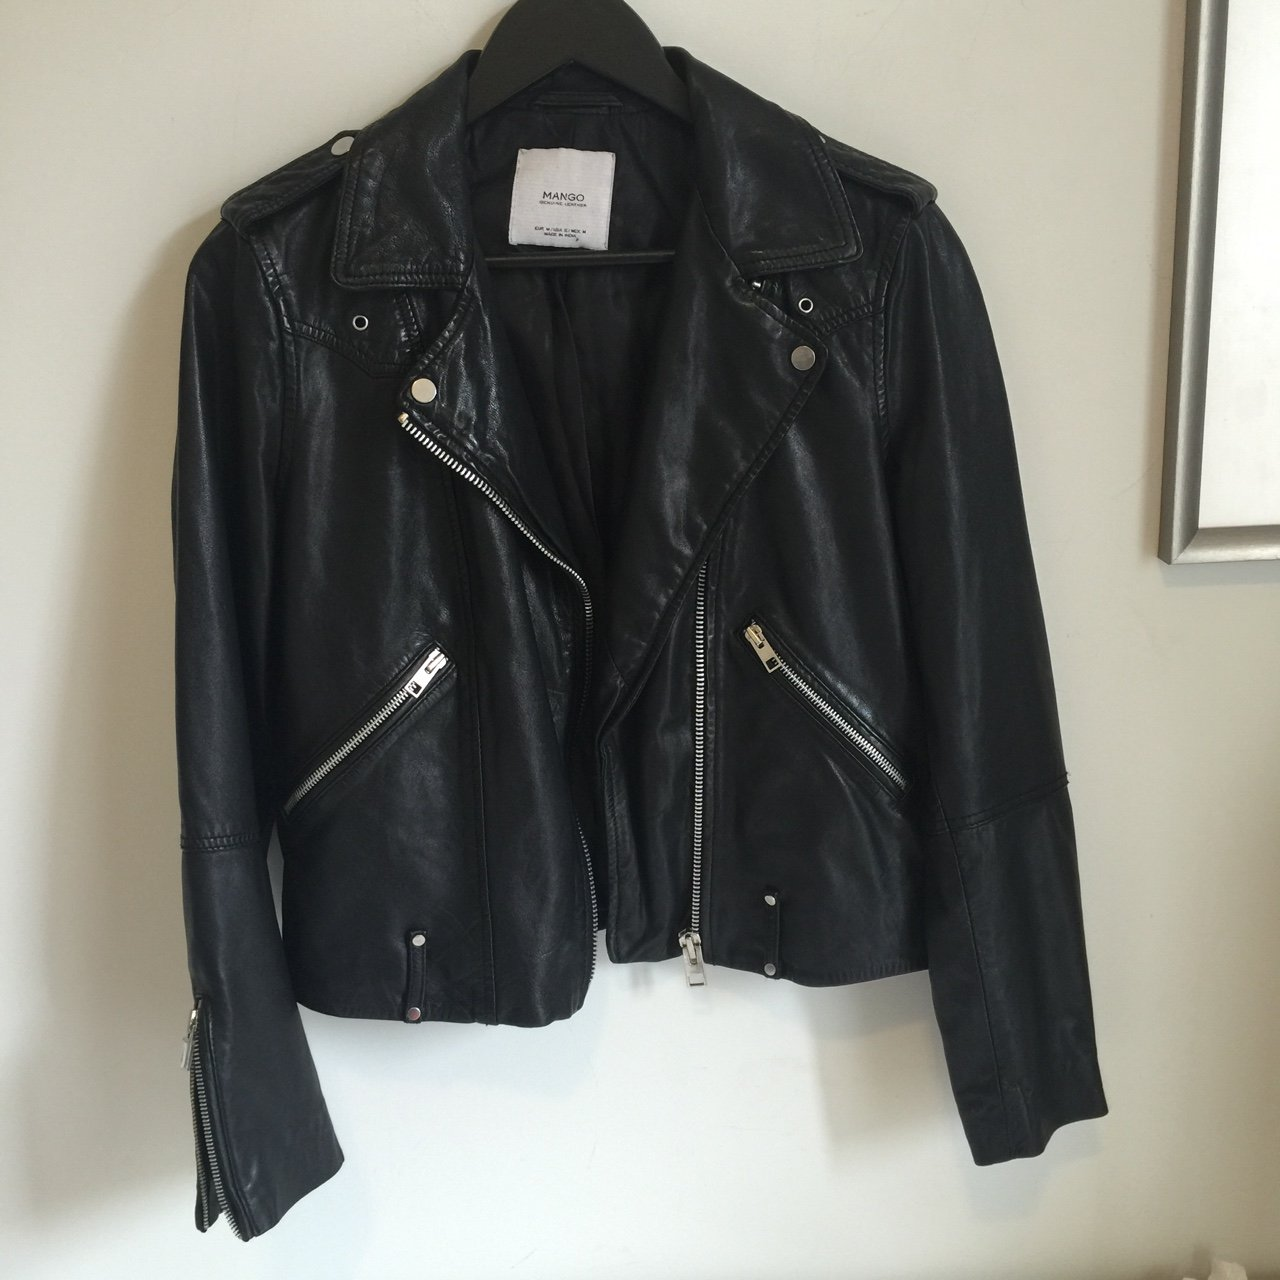 Mango Genuine Leather Jacket Worn Twice On Photo Shoot In Depop